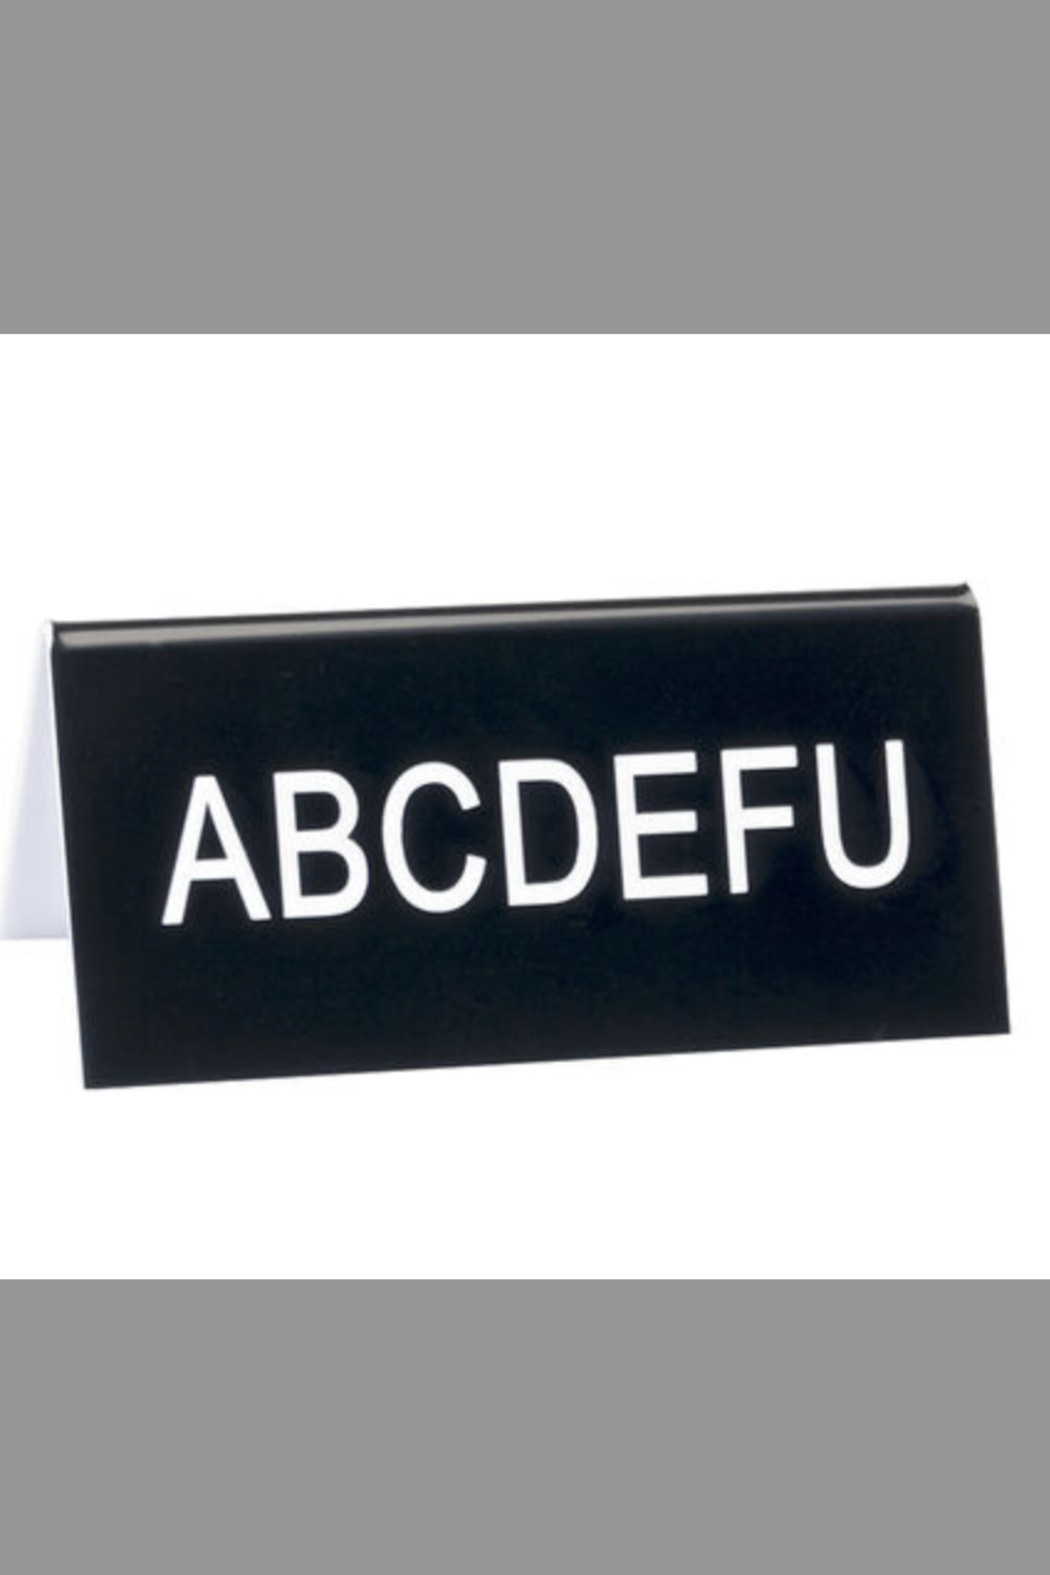 About Face Designs ABCDEFU Sign - Main Image